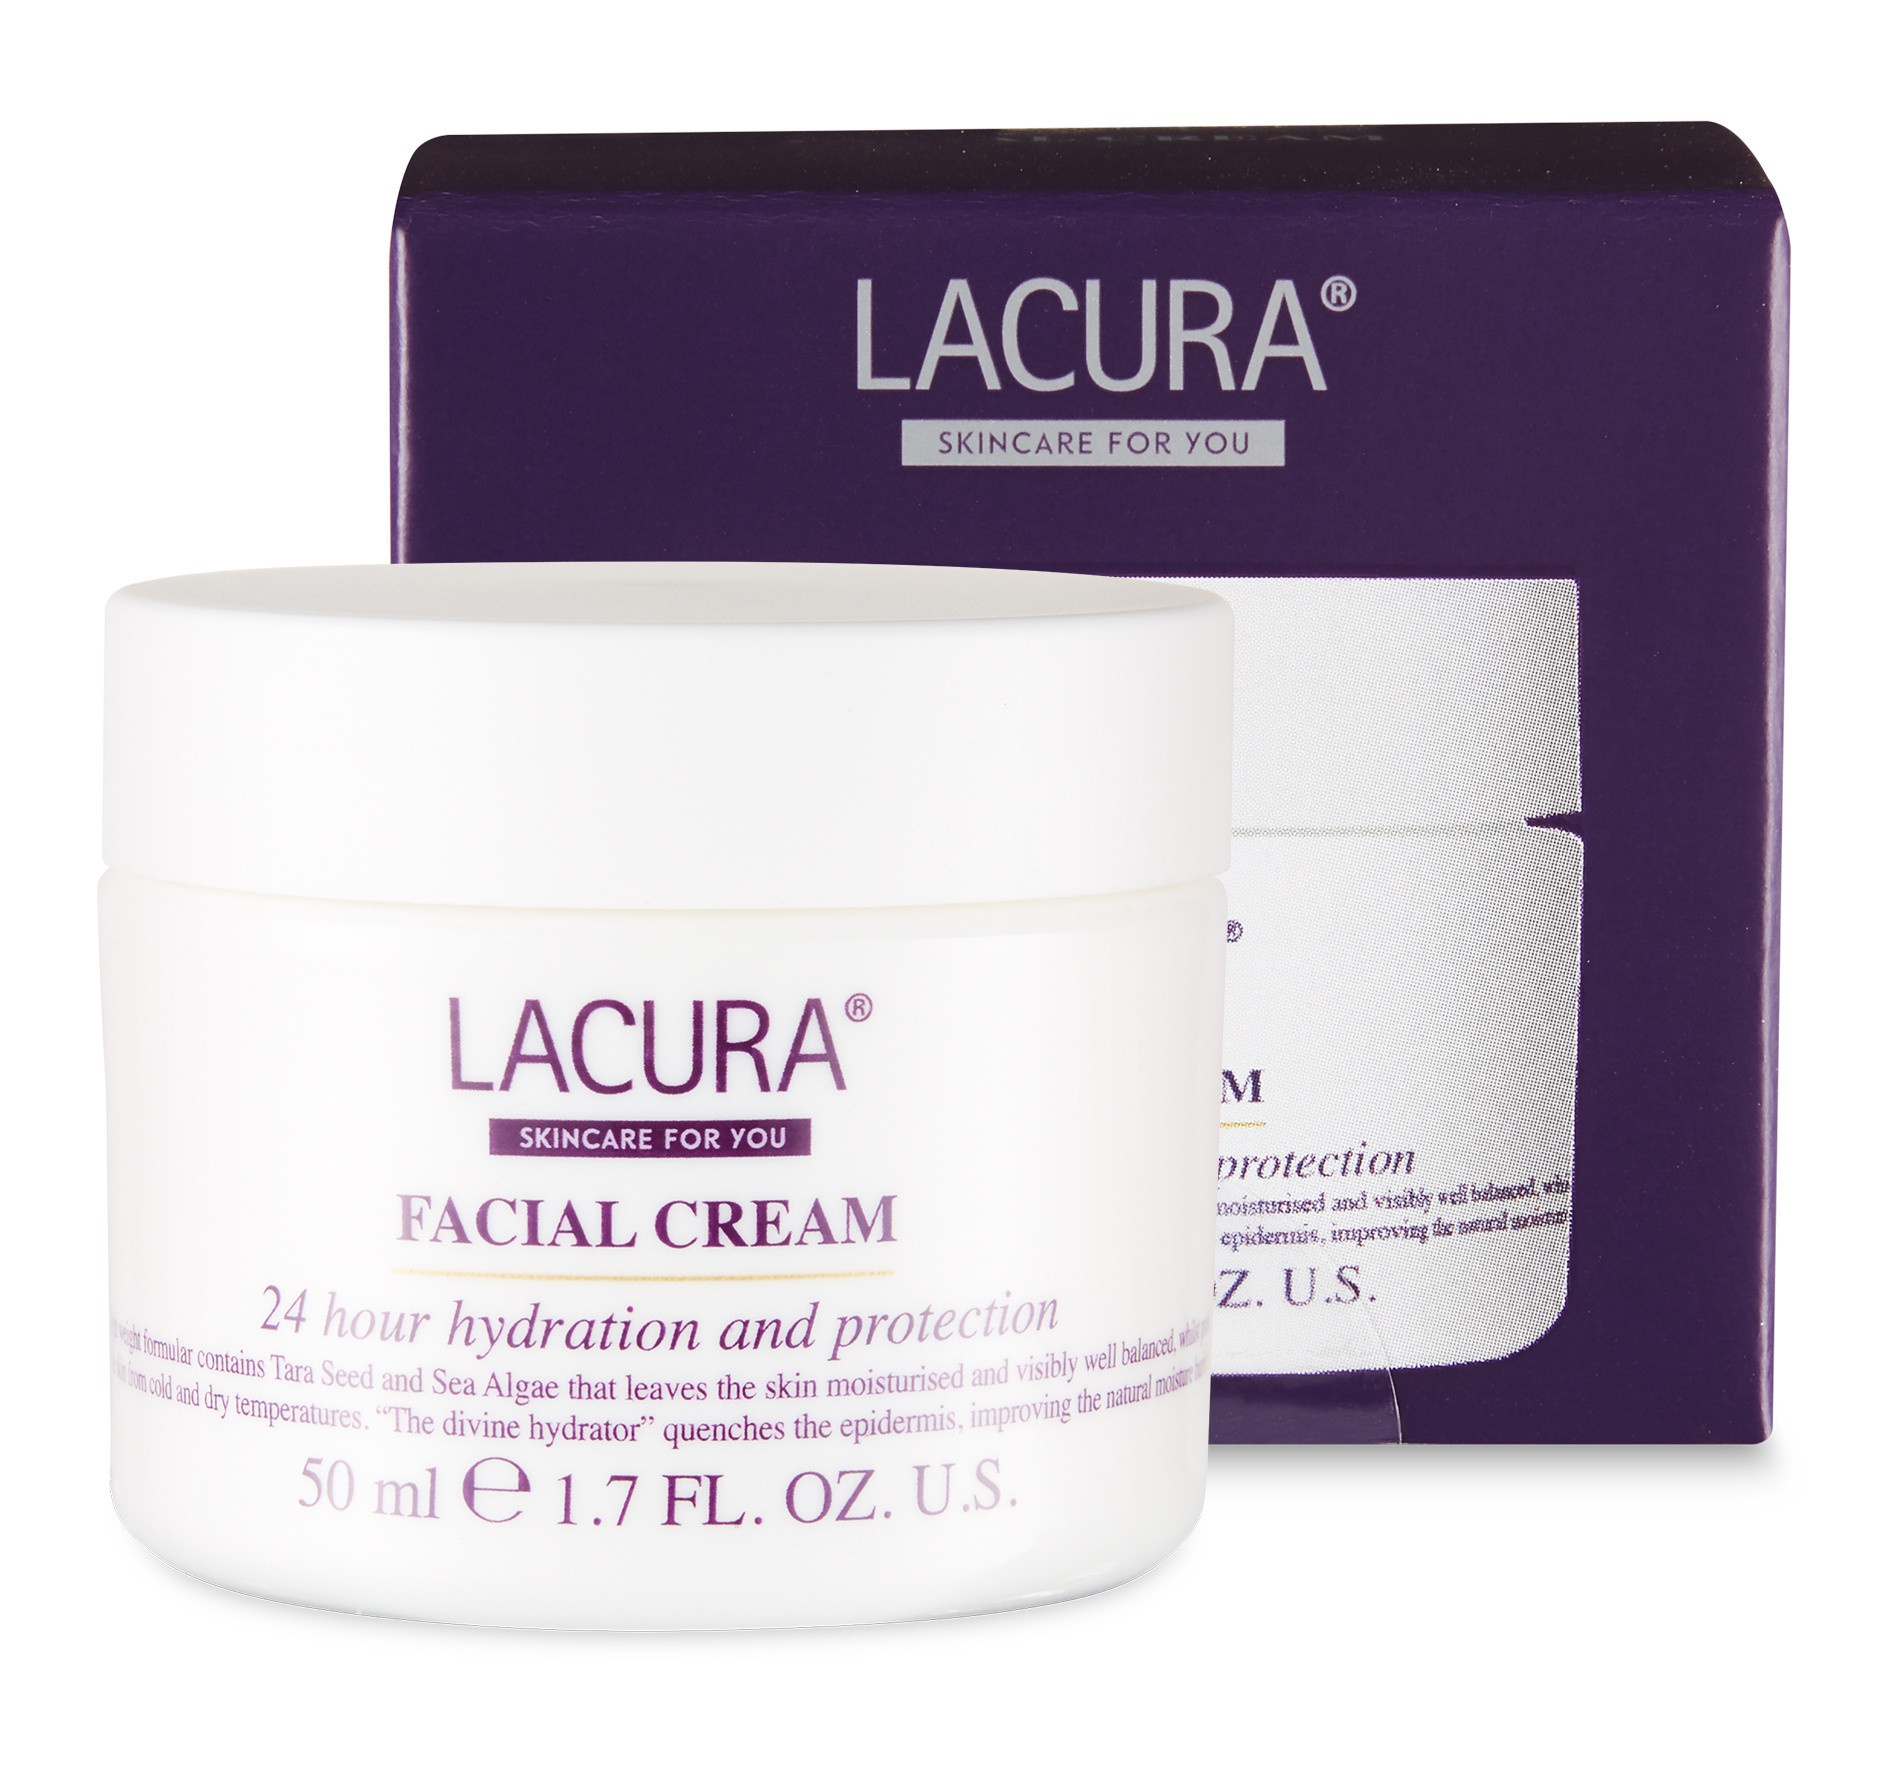 LACURA Facial Cream 24 Hour Hydration And Protection